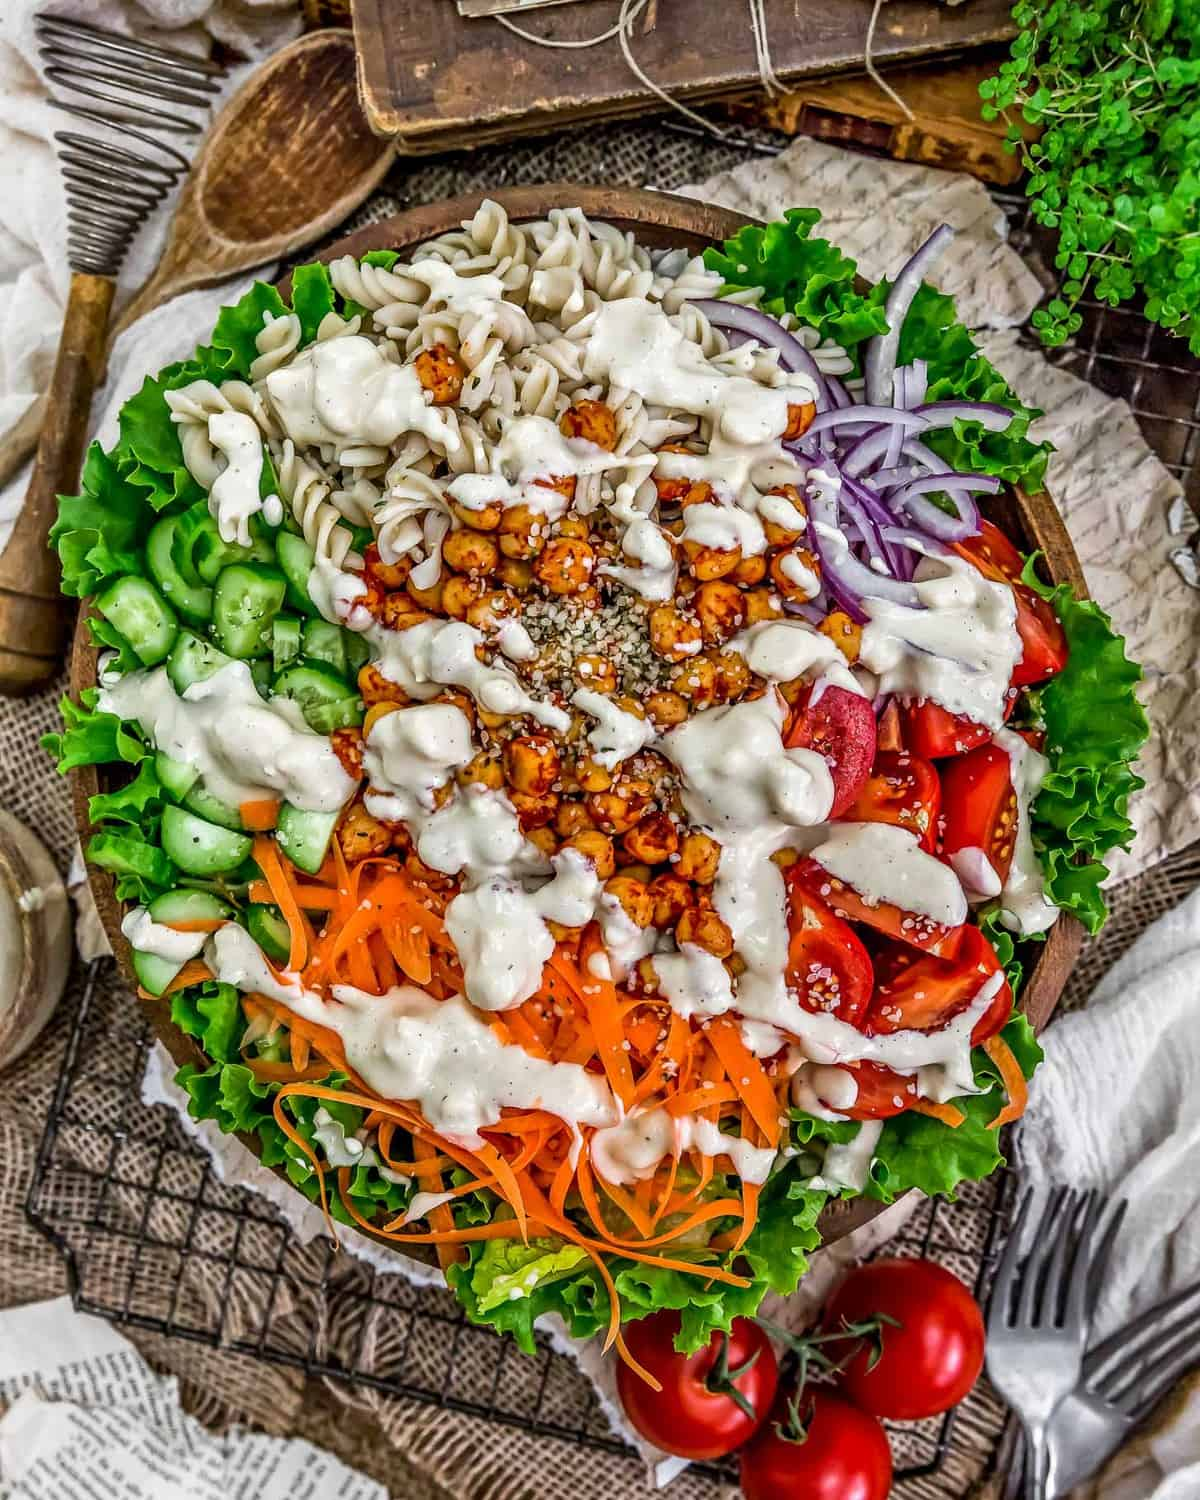 Vegan Blue Cheese Dressing on a salad